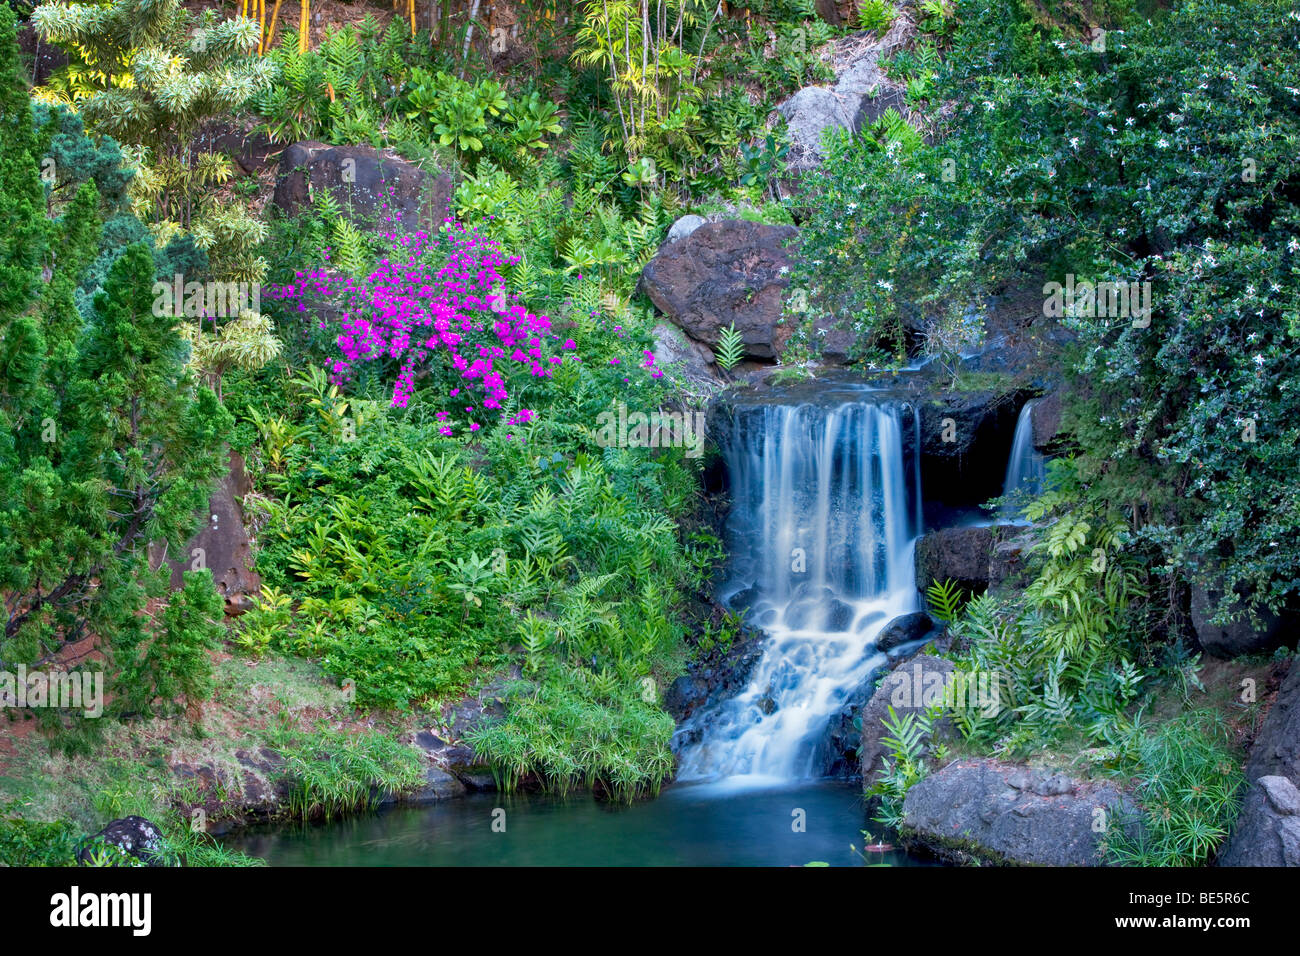 Waterfall At Na Aina Kai Botanical Gardens Kauai Hawaii Stock Photo Royalty Free Image